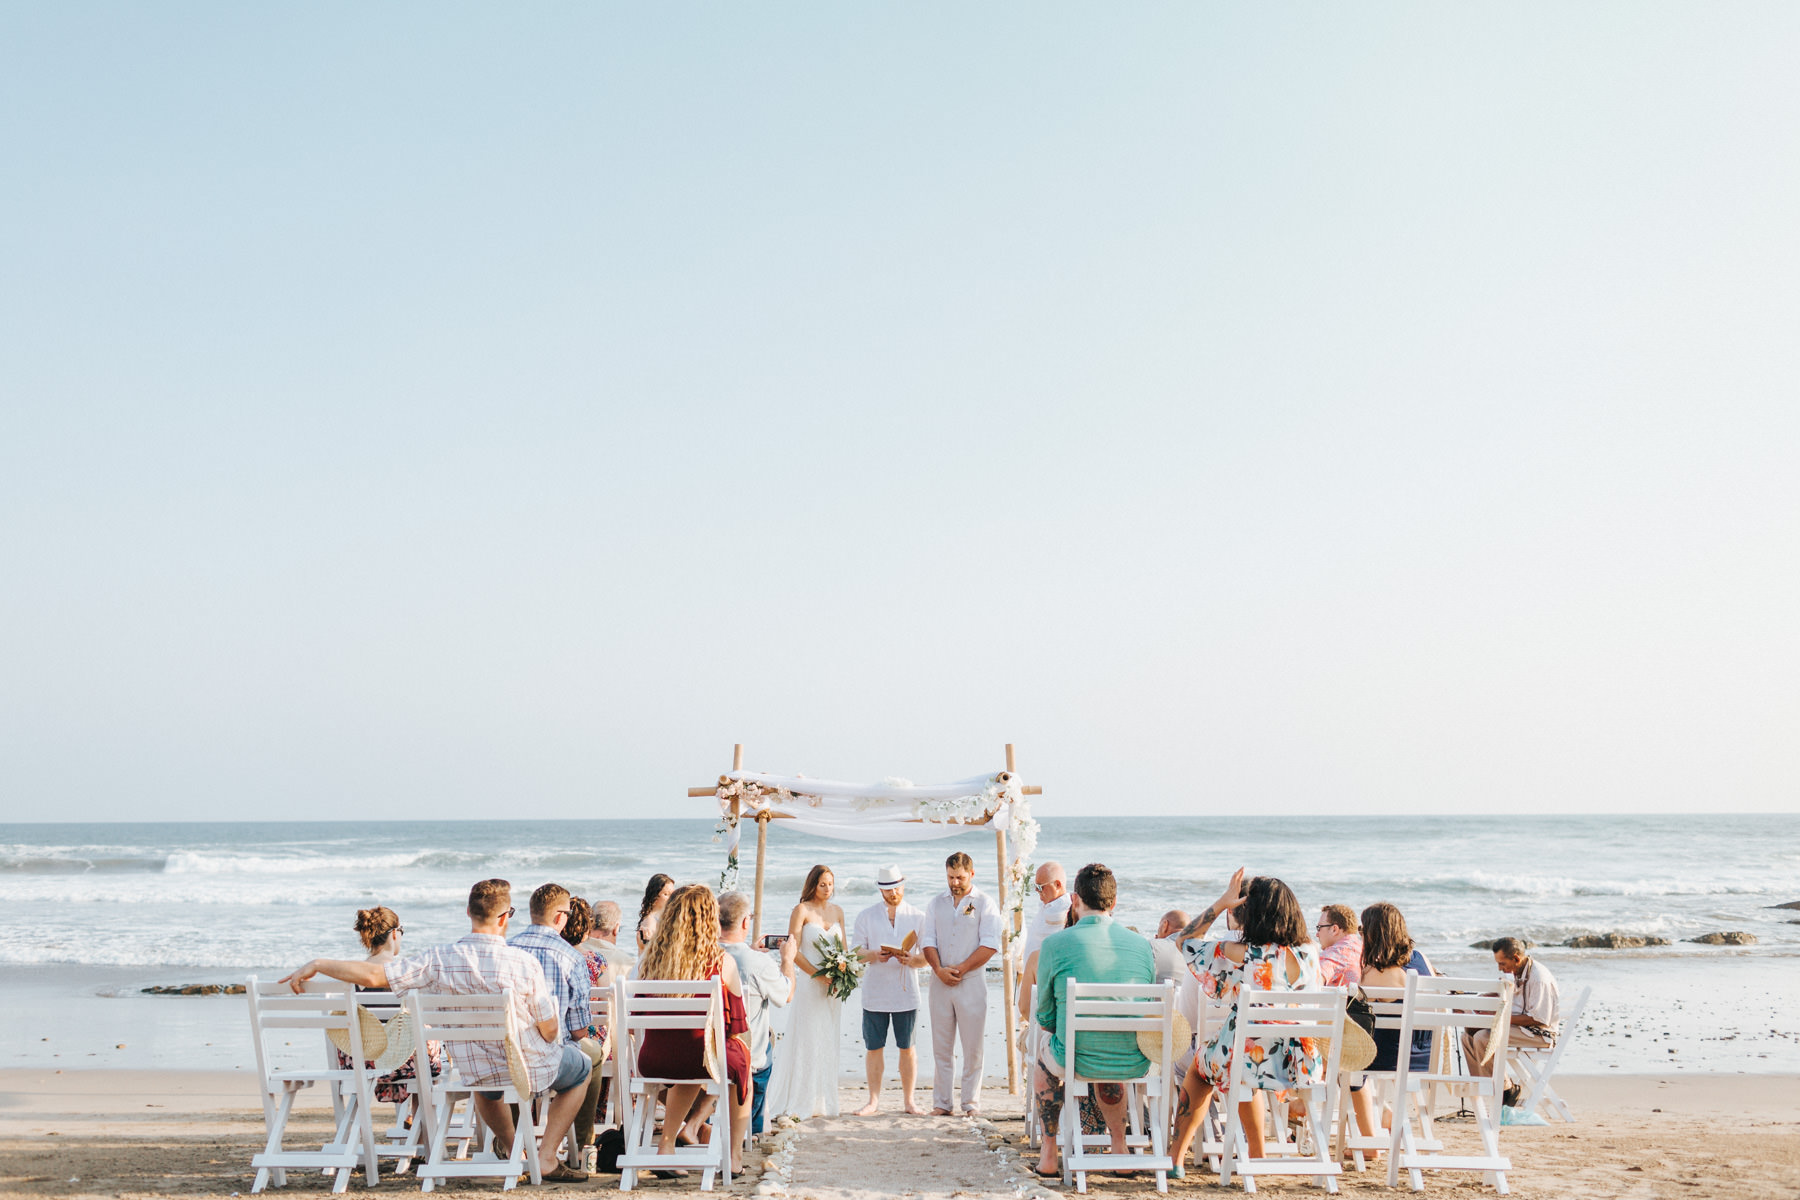 Costa Rica Beach wedding photography